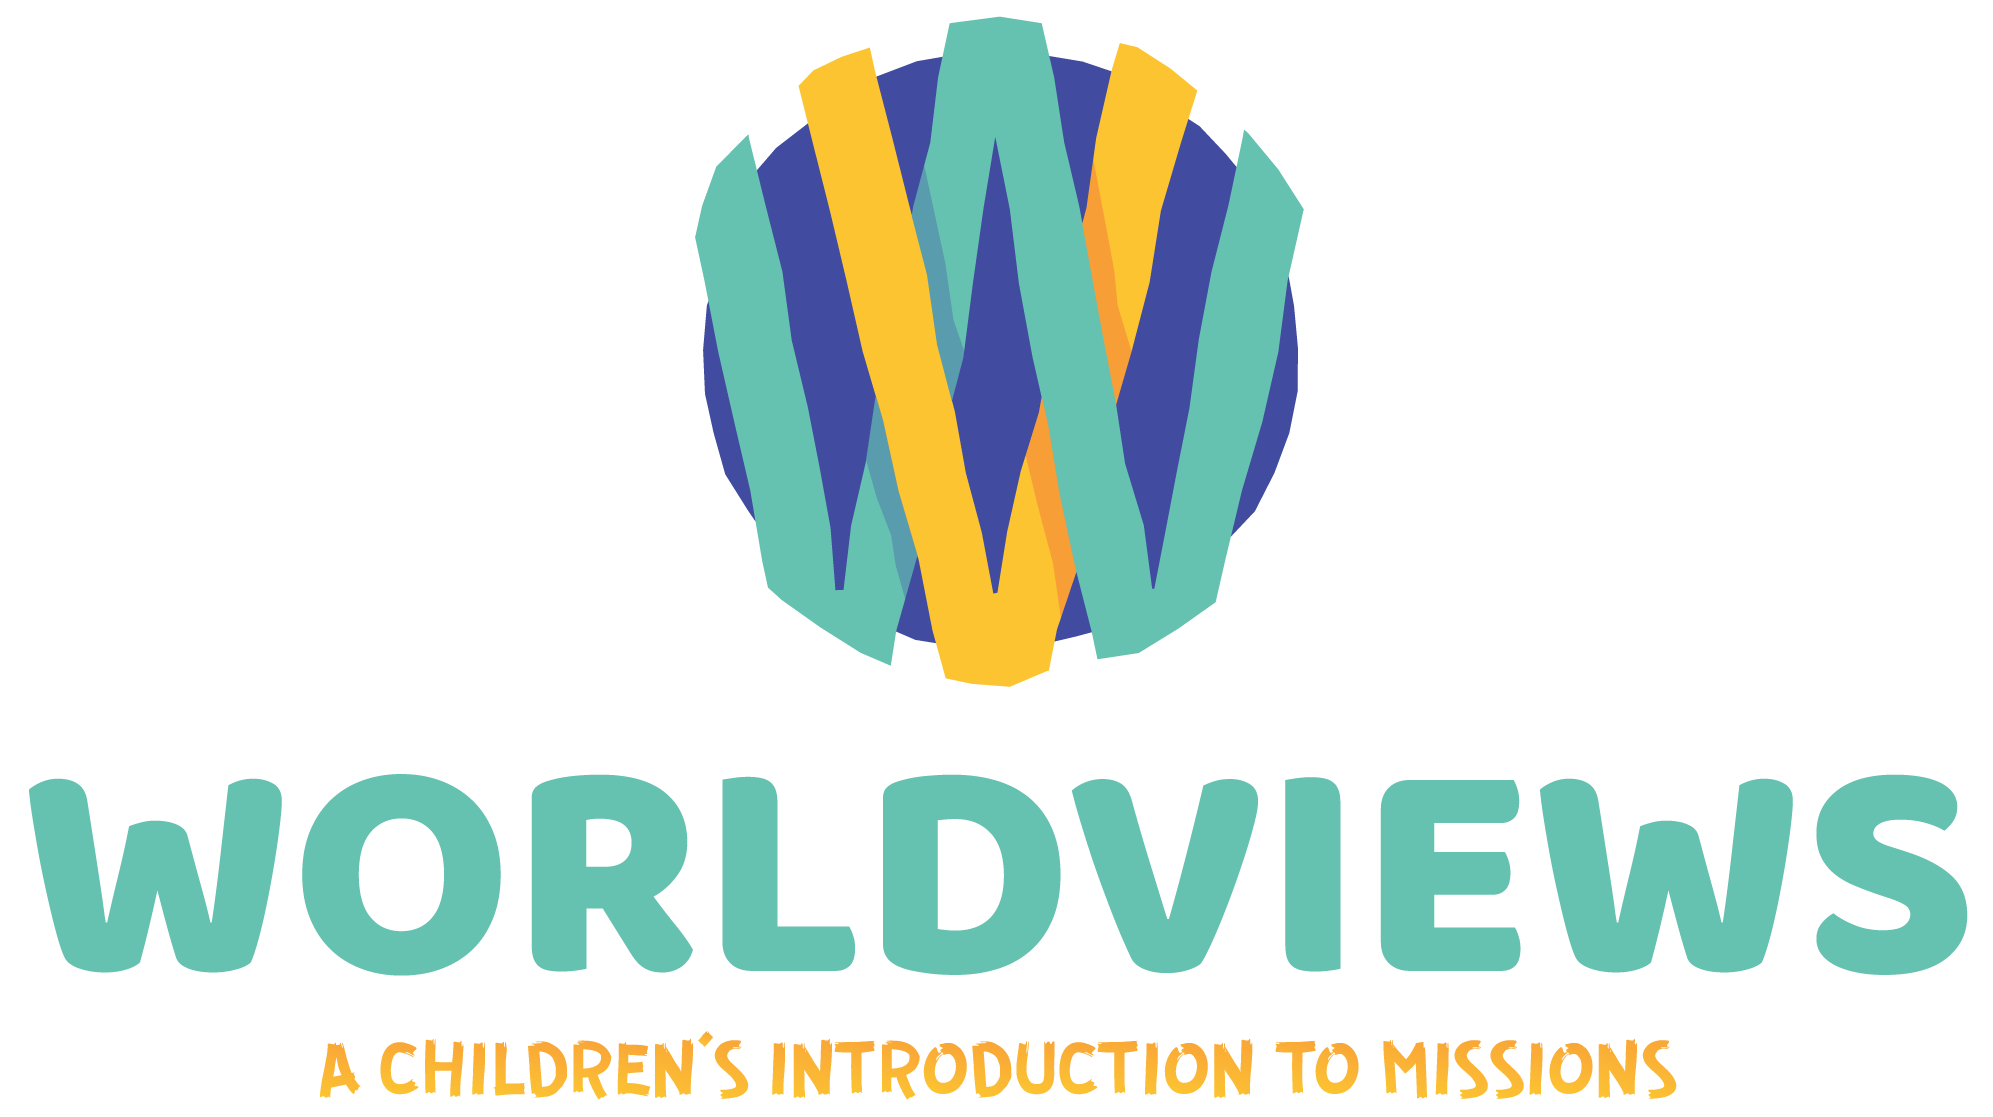 2018 WORLDVIEWS CAMPAIGN